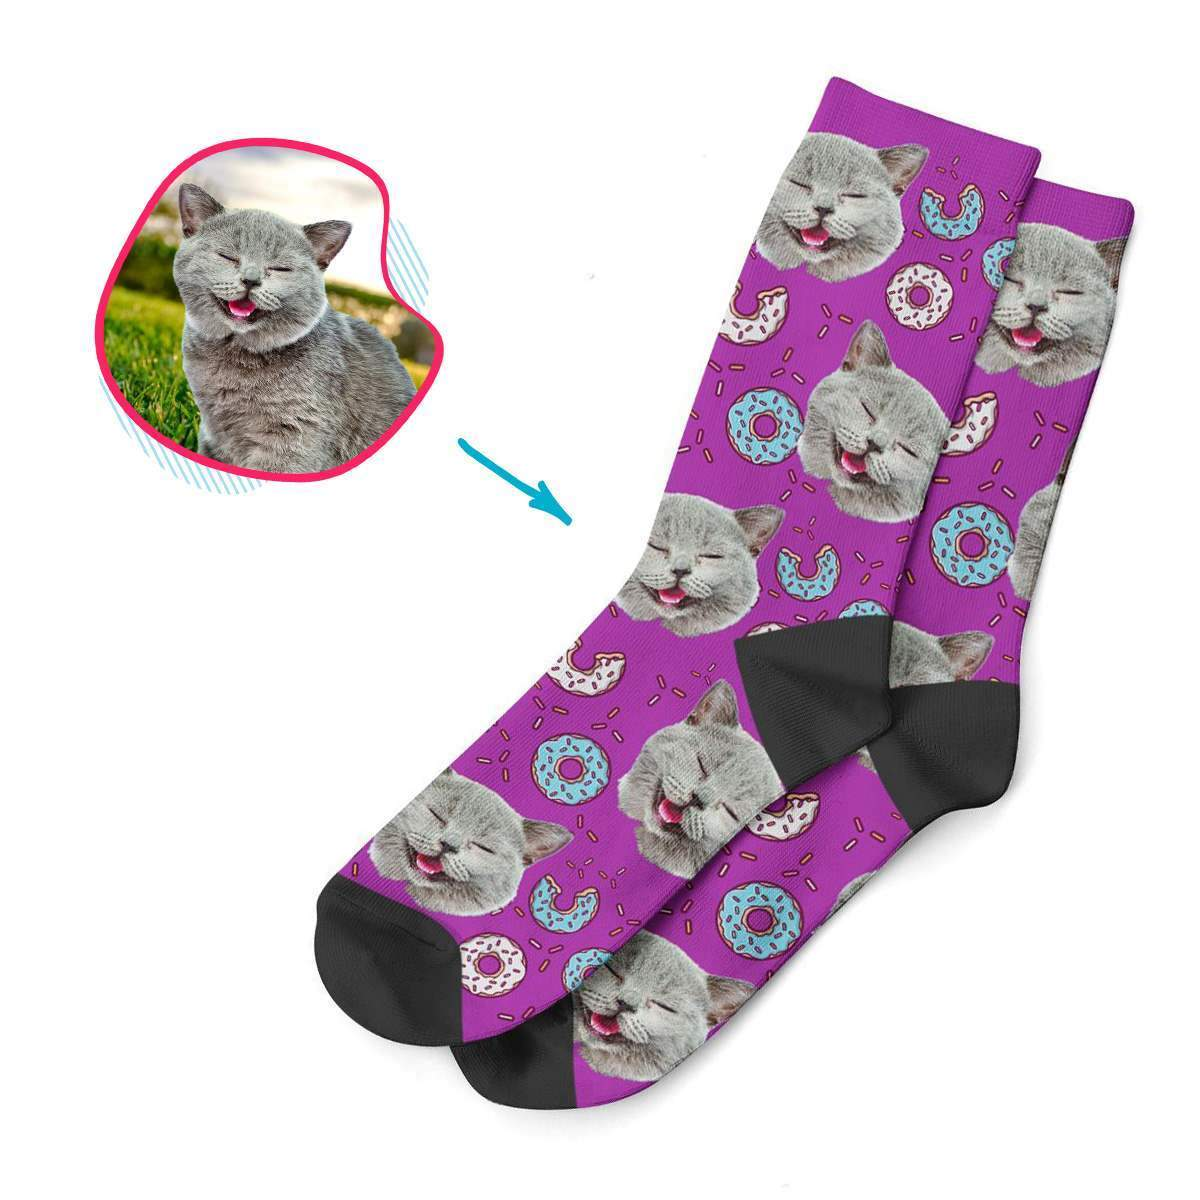 purple Donuts socks personalized with photo of face printed on them